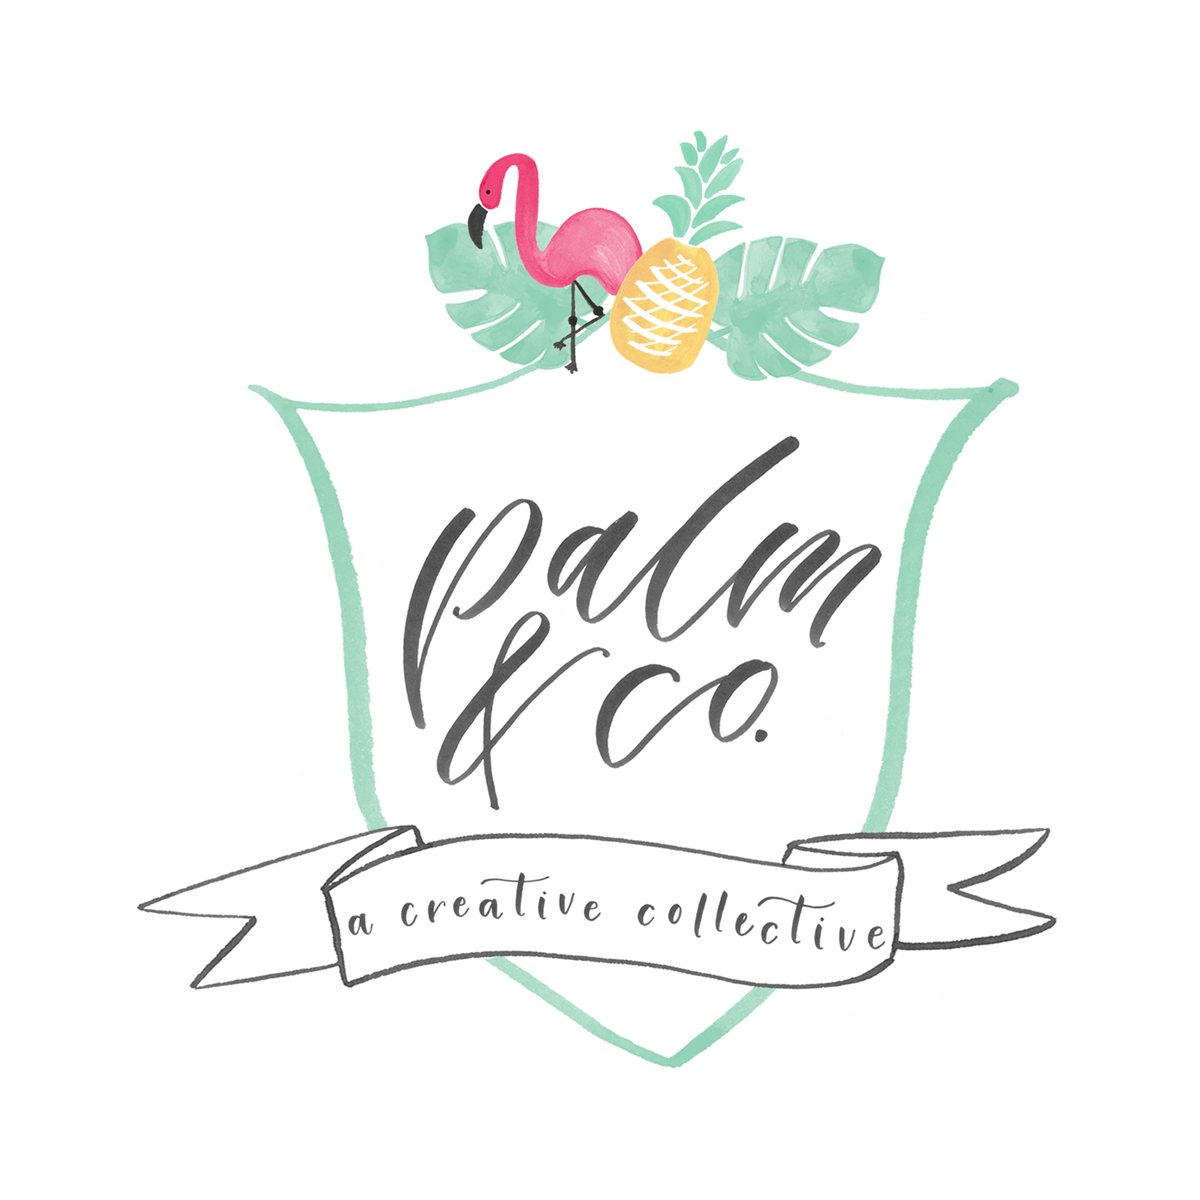 Palm & Co. crest hand-lettered logo